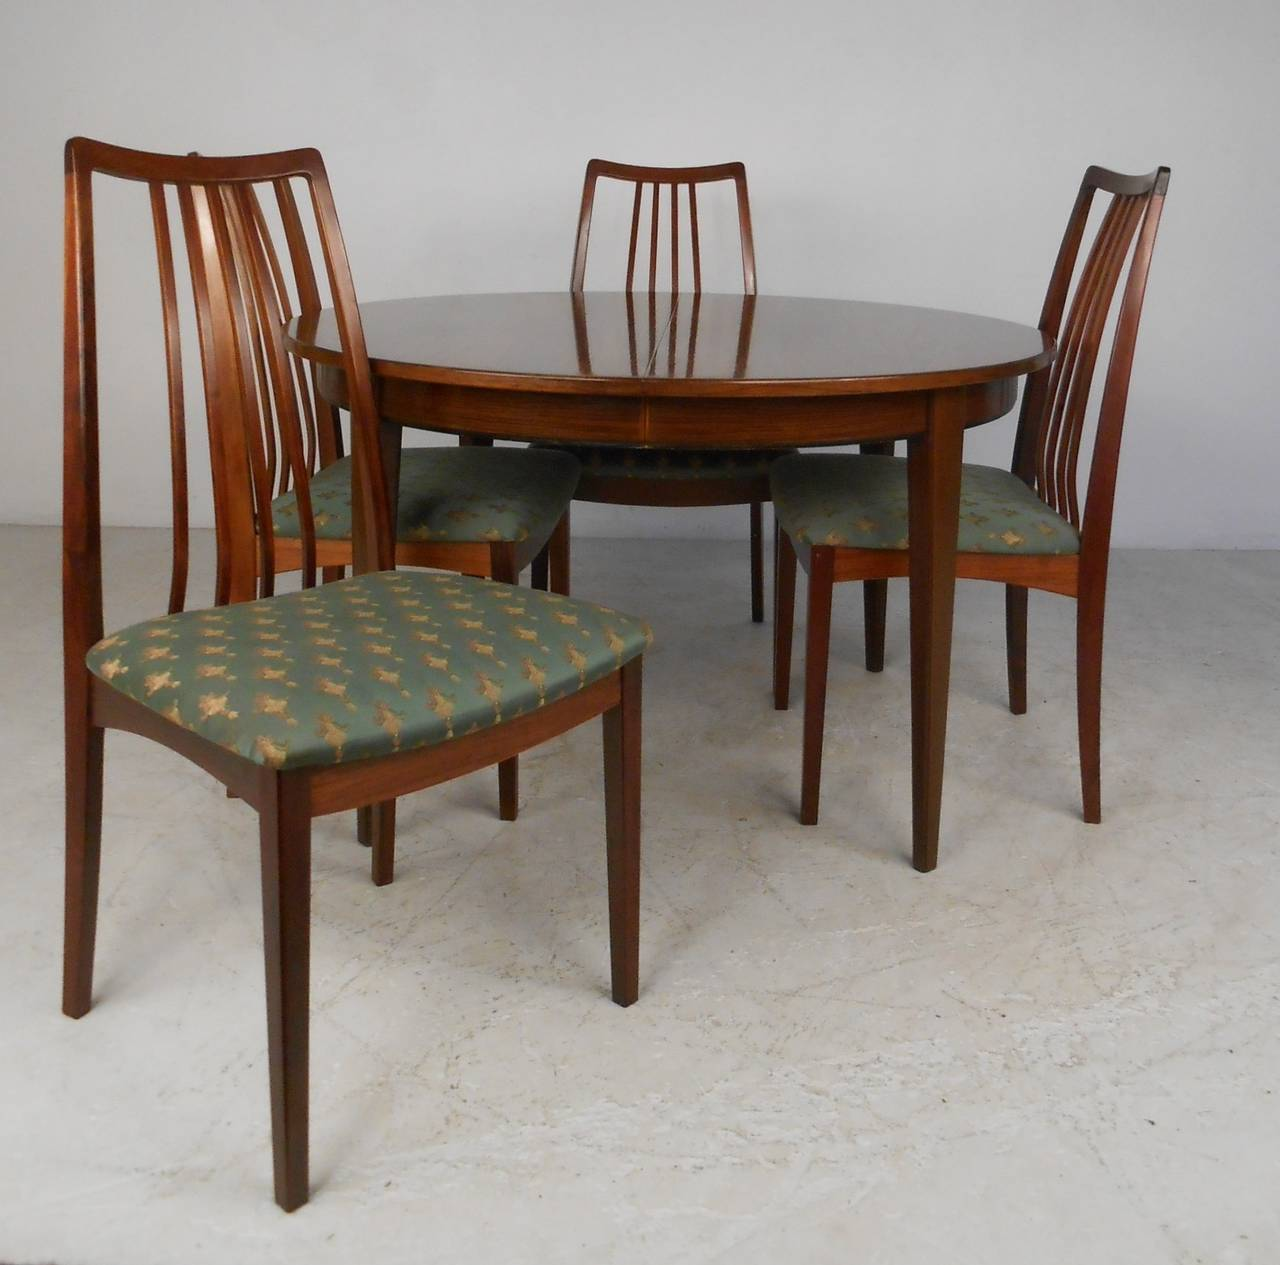 Omann Jun Rosewood Dining Table And Chairs C 1959